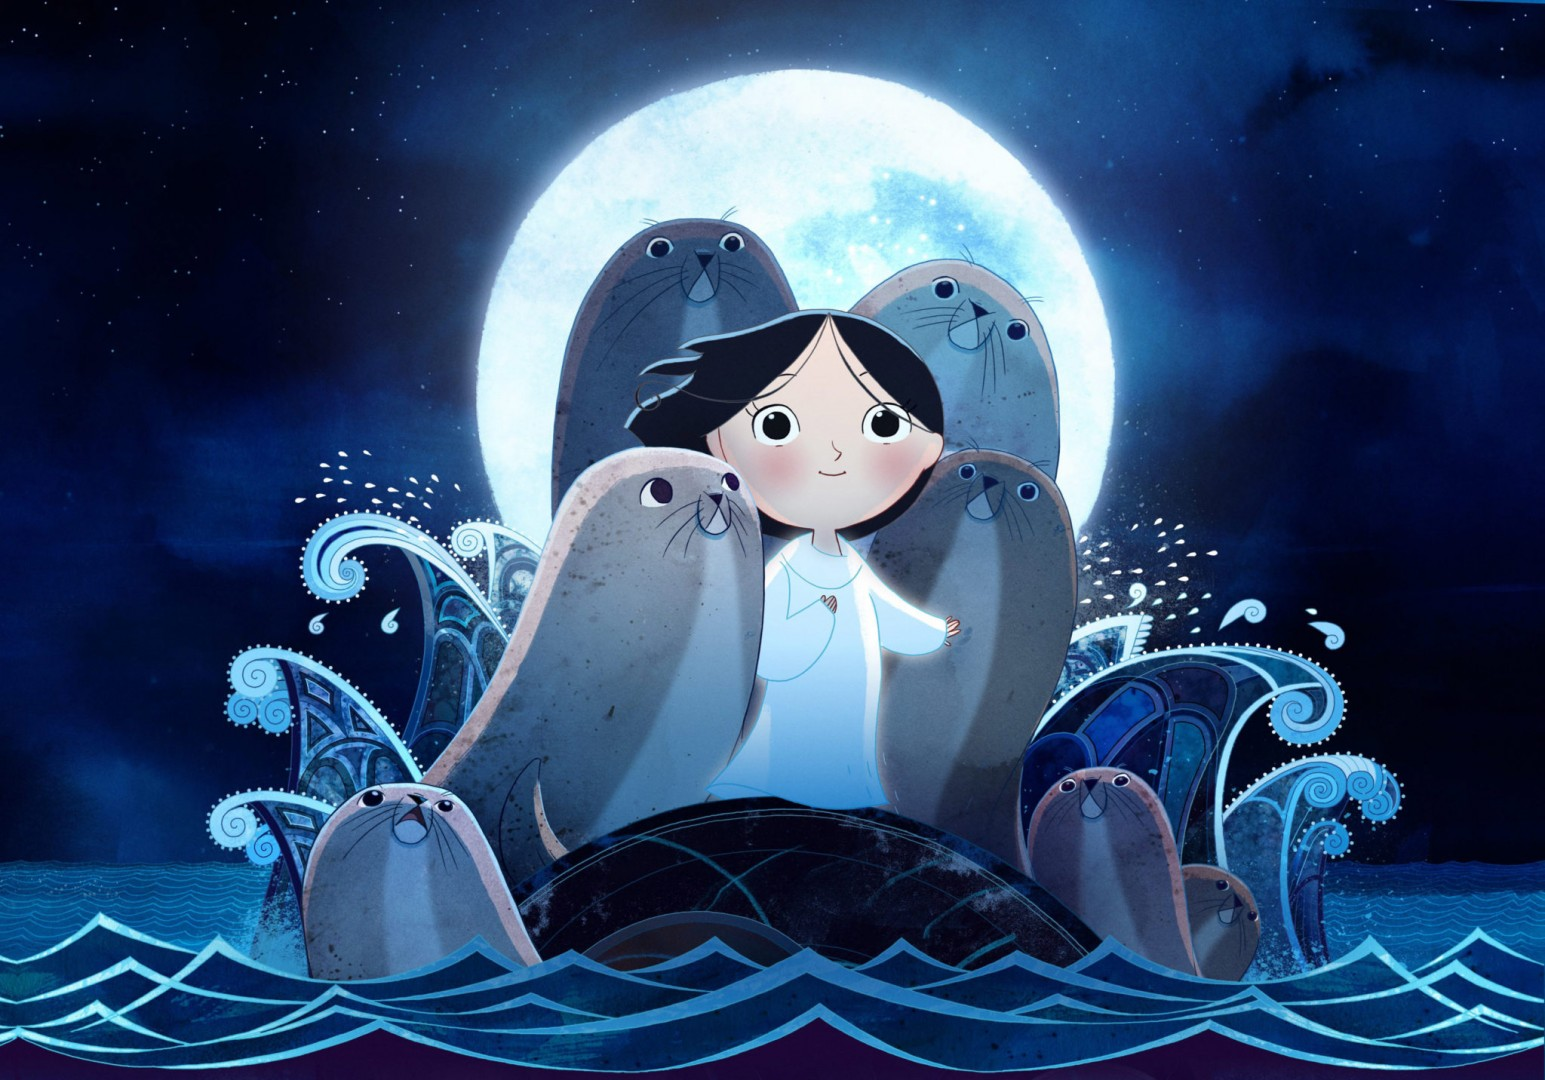 Song of the sea (La canción del mar, dirigida por Tomm Moore